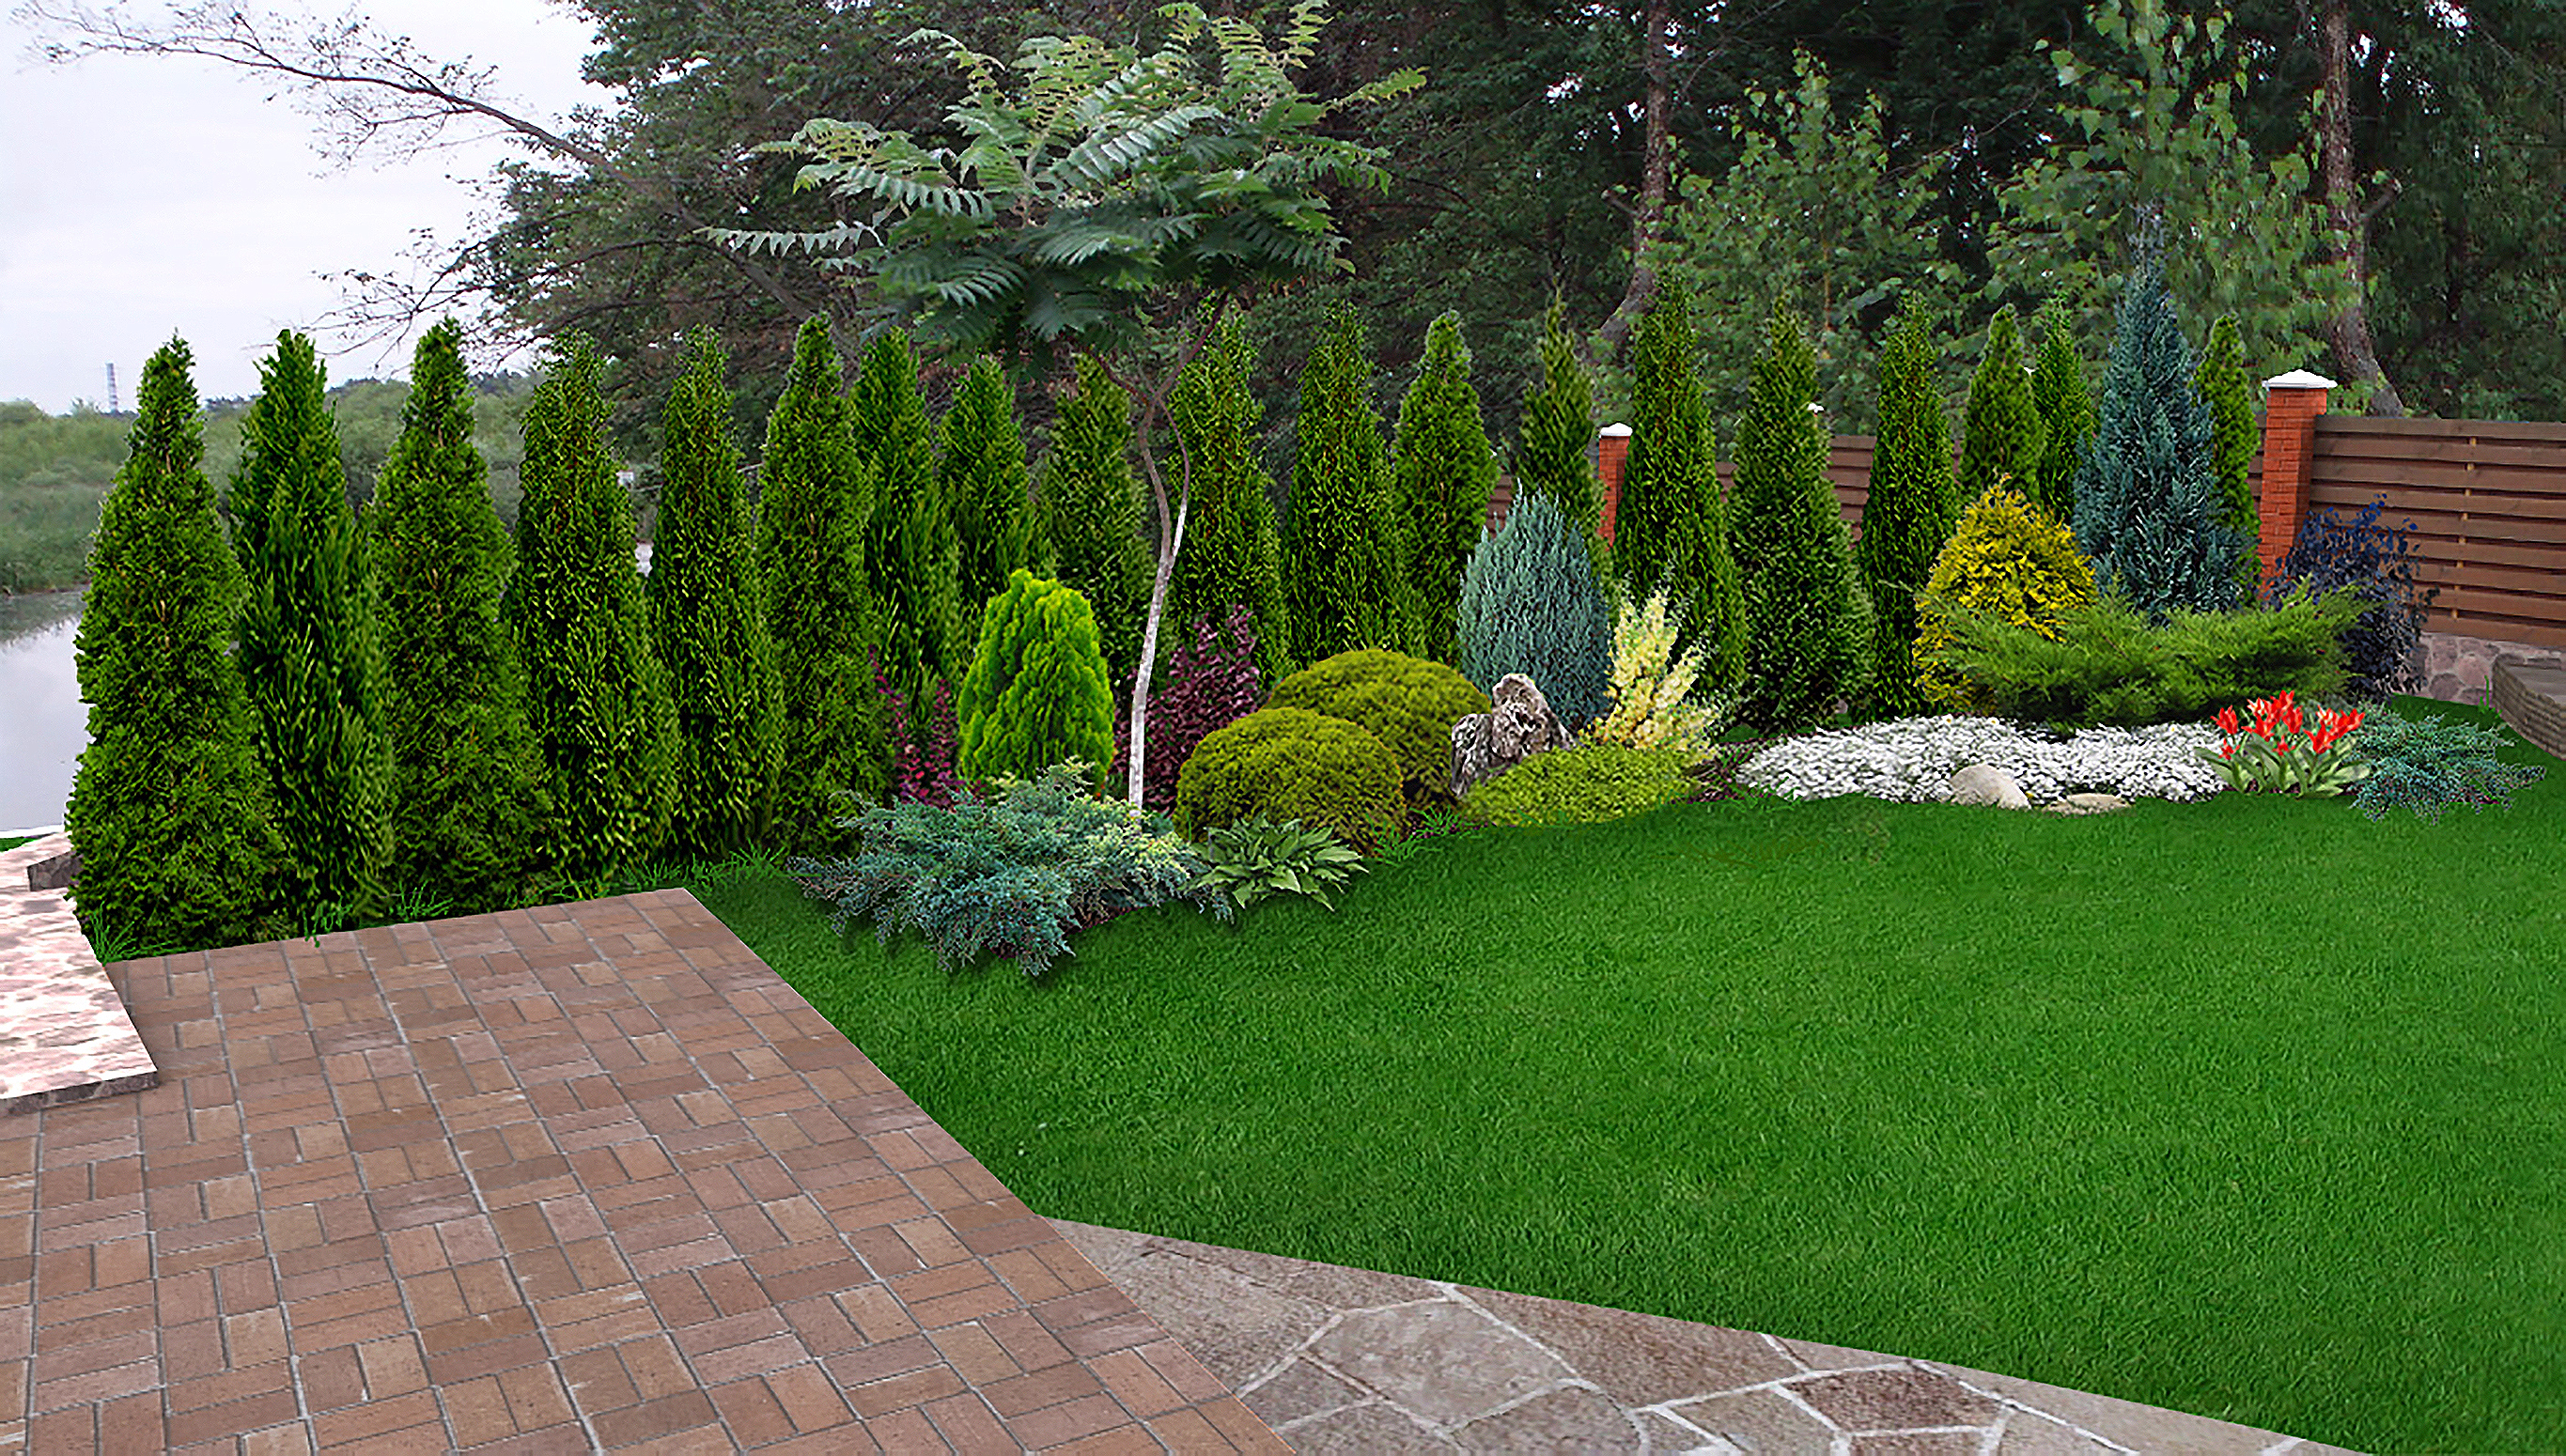 Ways to add privacy to your backyard space reliable for How to add privacy to backyard